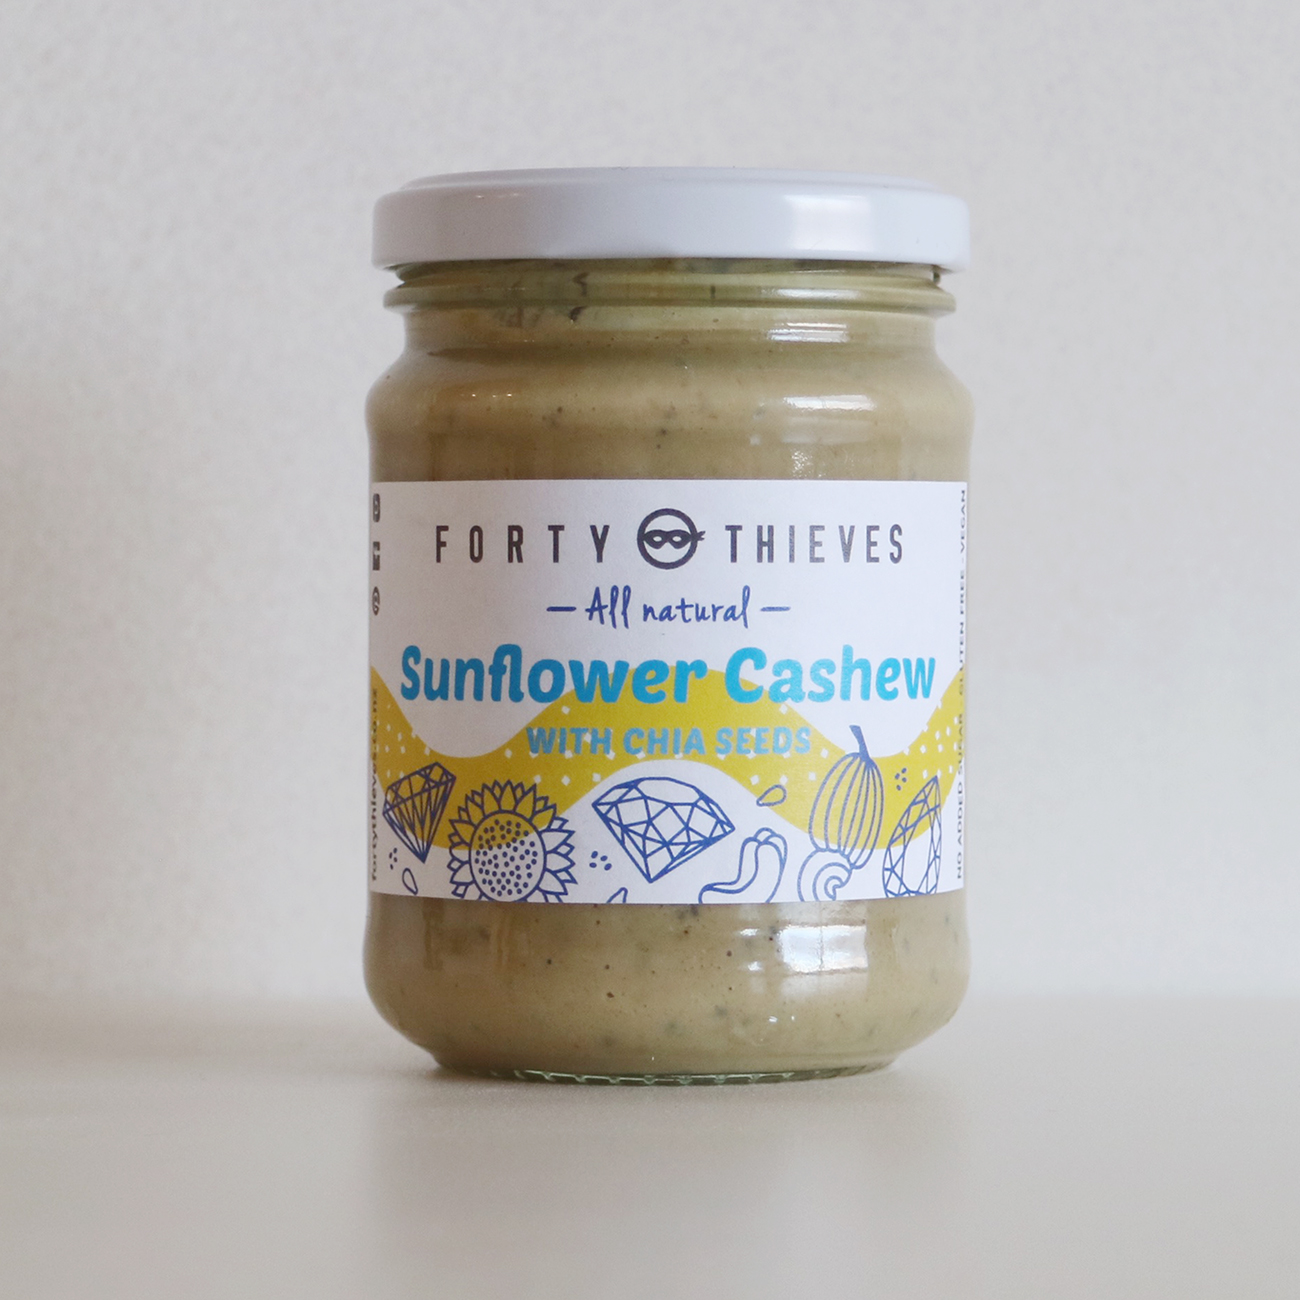 fortythieves_sunflower-cashew-square_1300